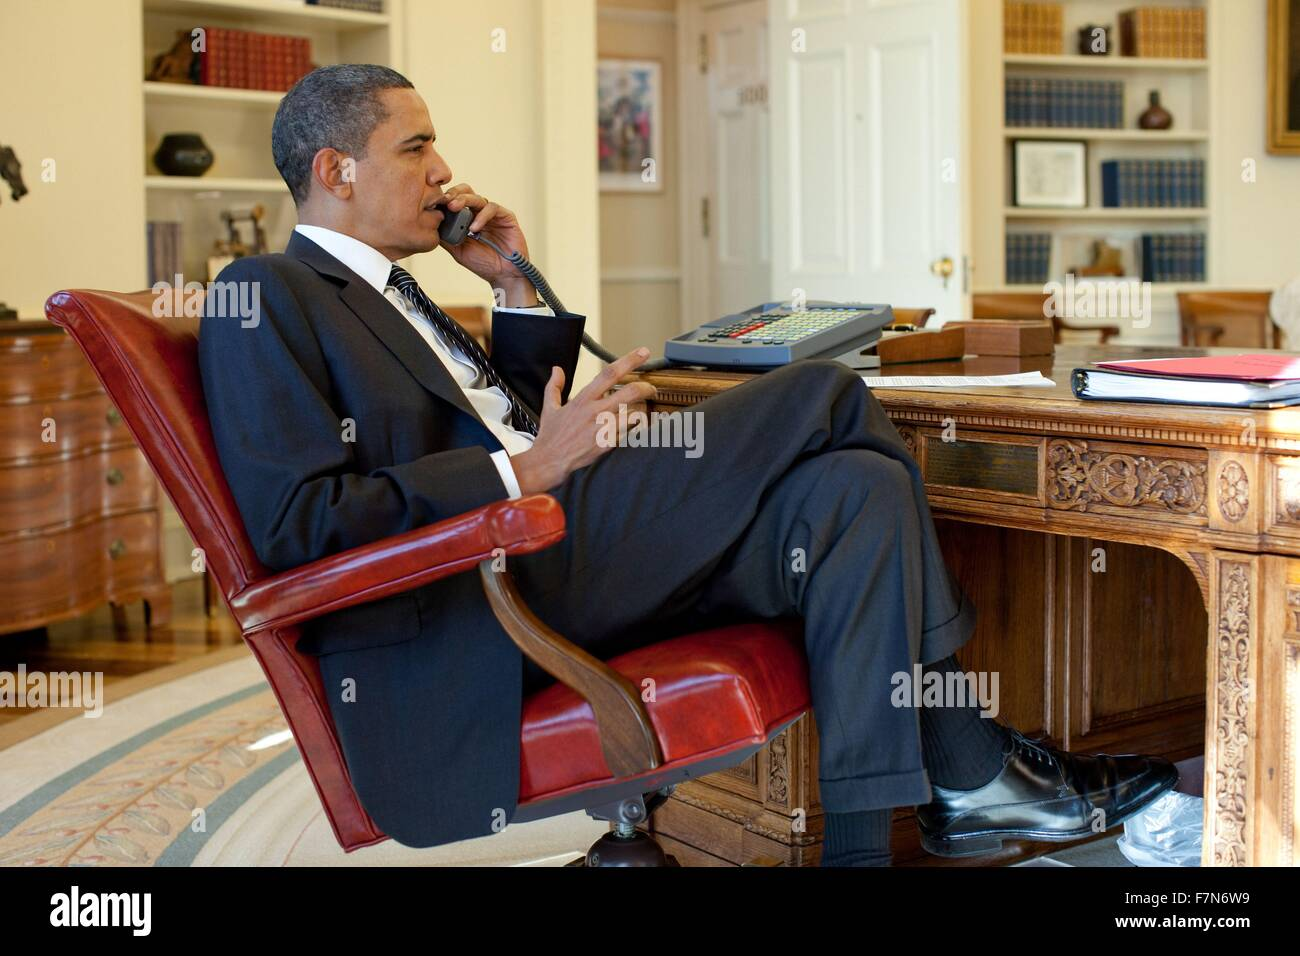 Barak Obama on the phone in the Oval Office with Rene Preval, 2010. - Stock Image